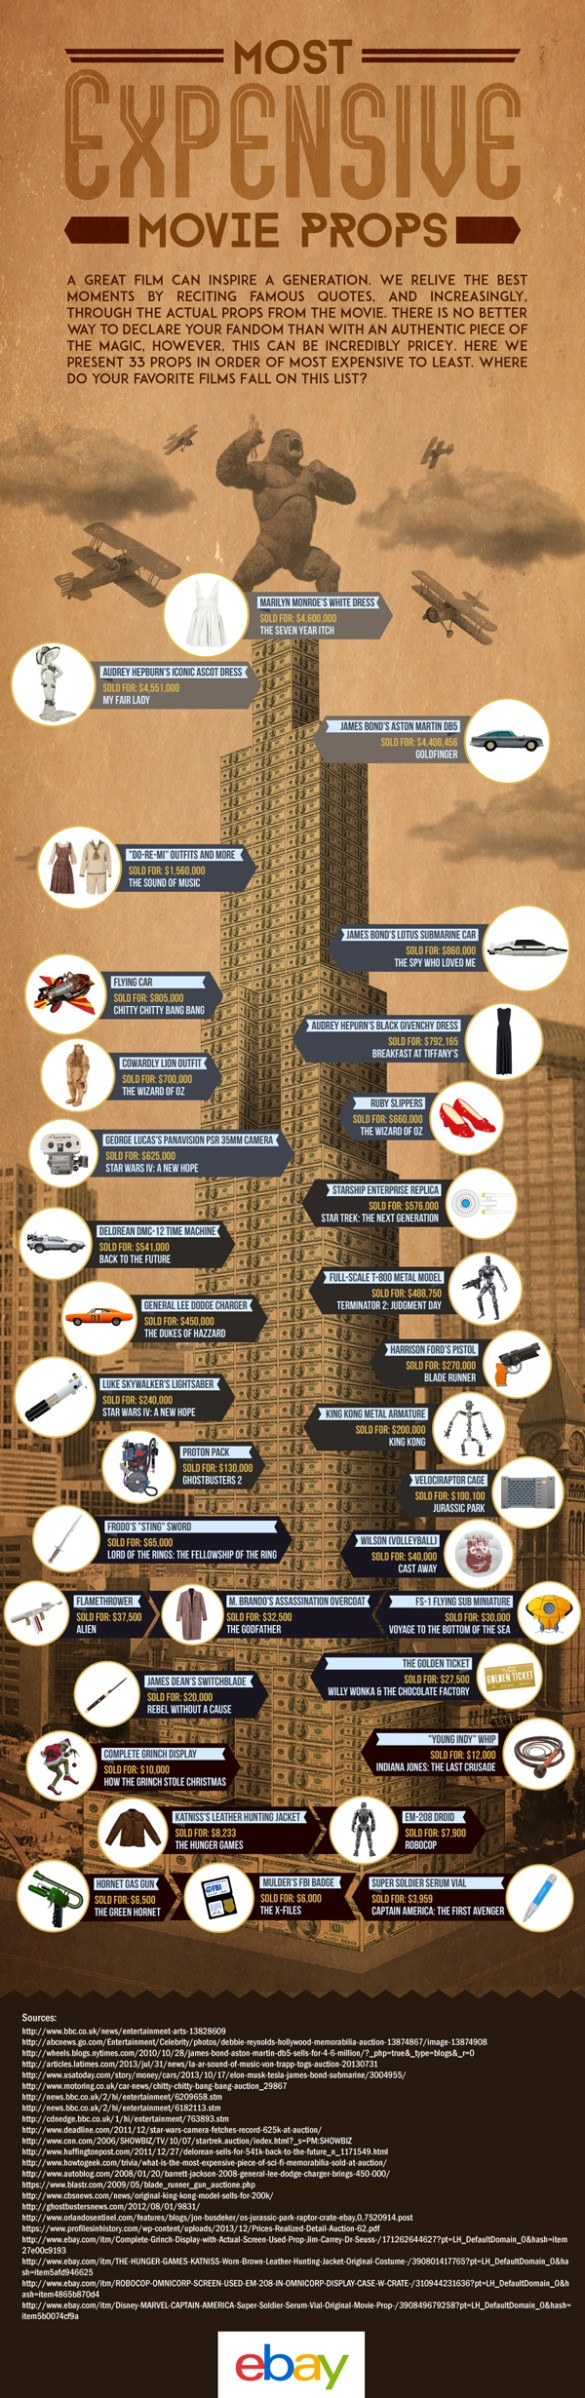 Movie props infographic full